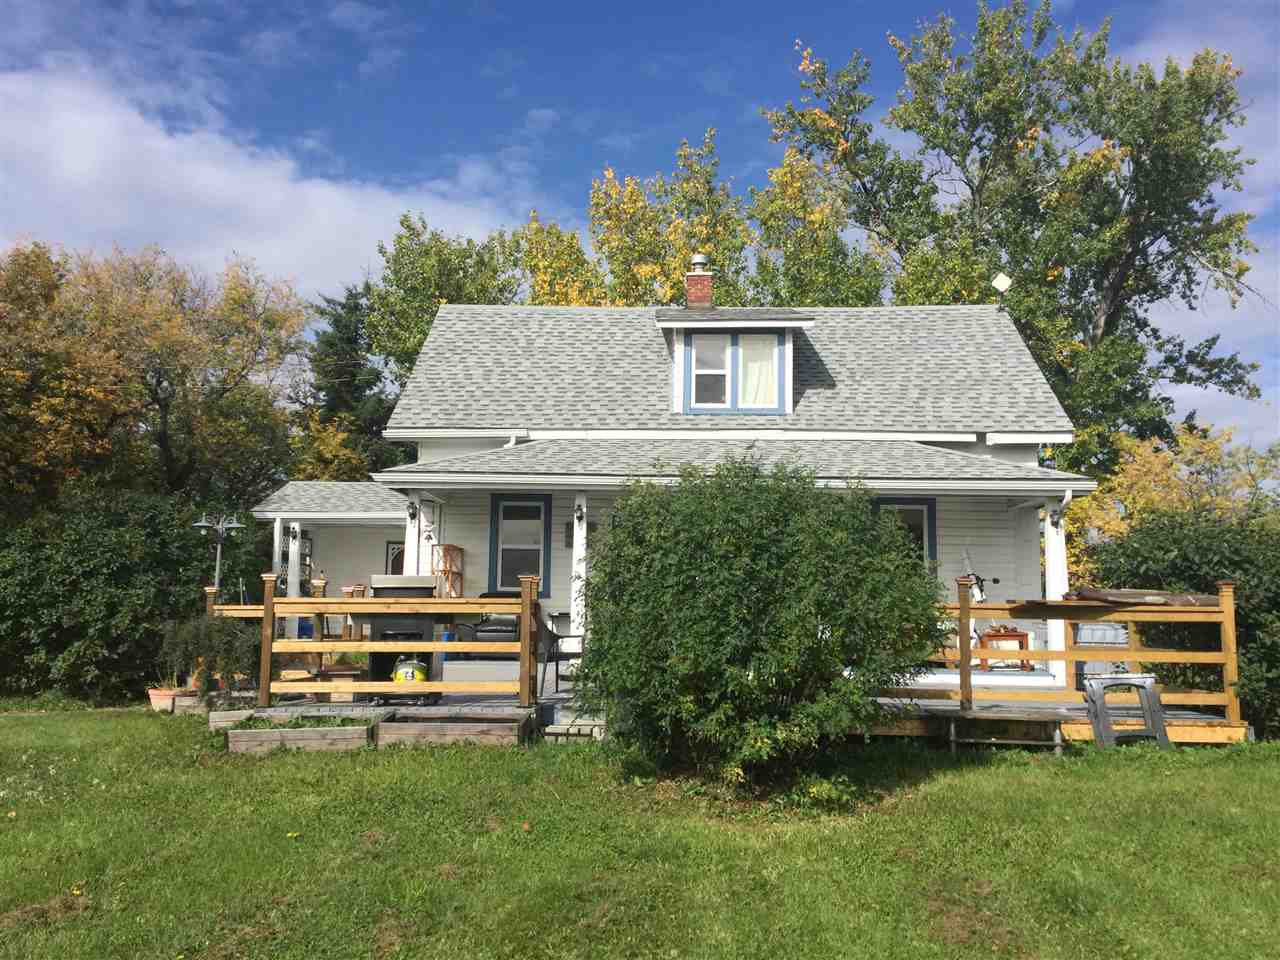 Main Photo: 20580 Twp Rd 602: Rural Thorhild County House for sale : MLS®# E4178440